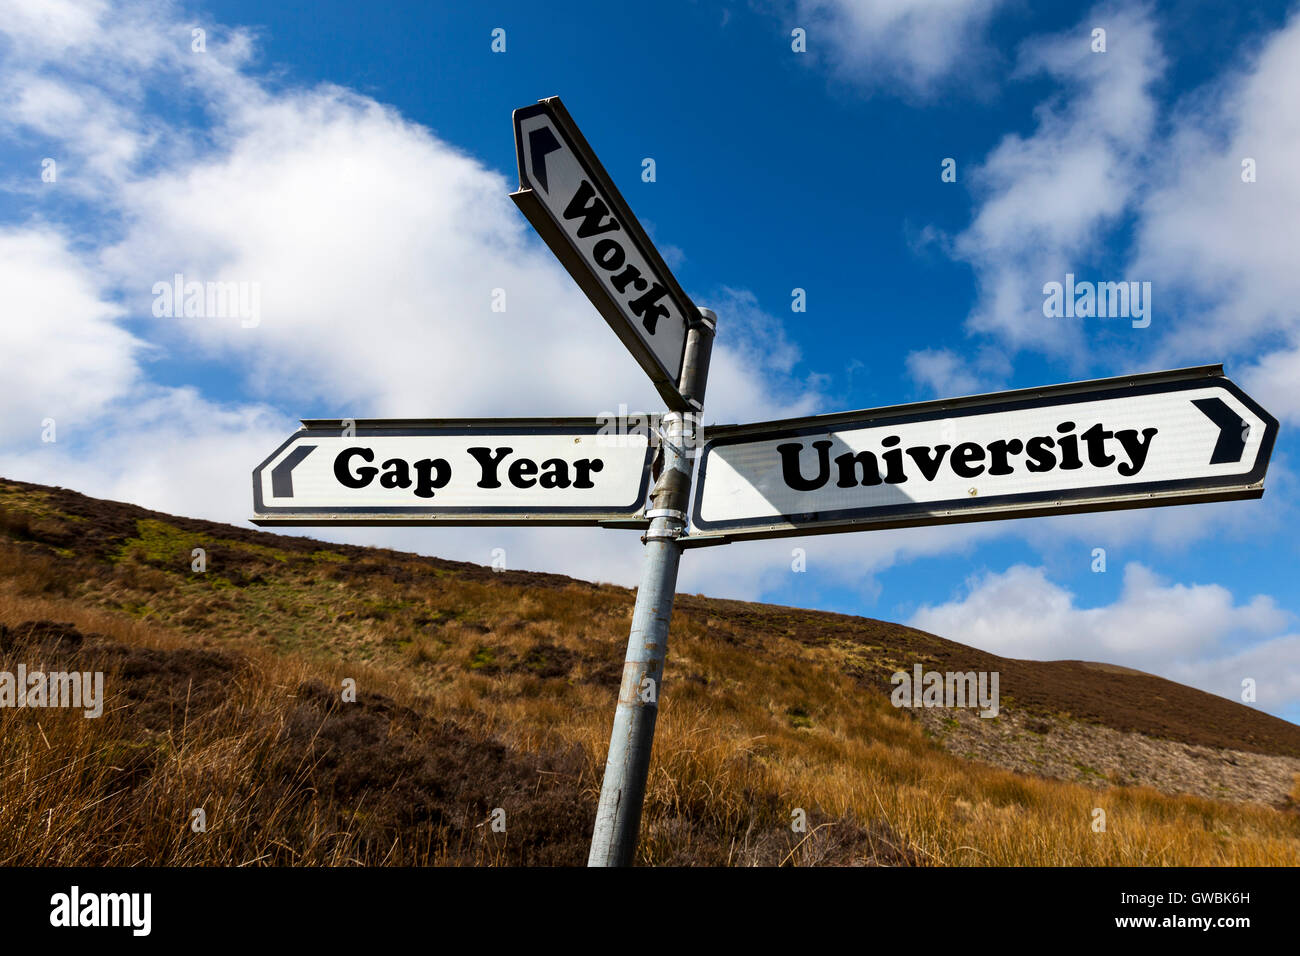 Gap year university work future choice choose life decision decide further education direction sign words antonyms - Stock Image